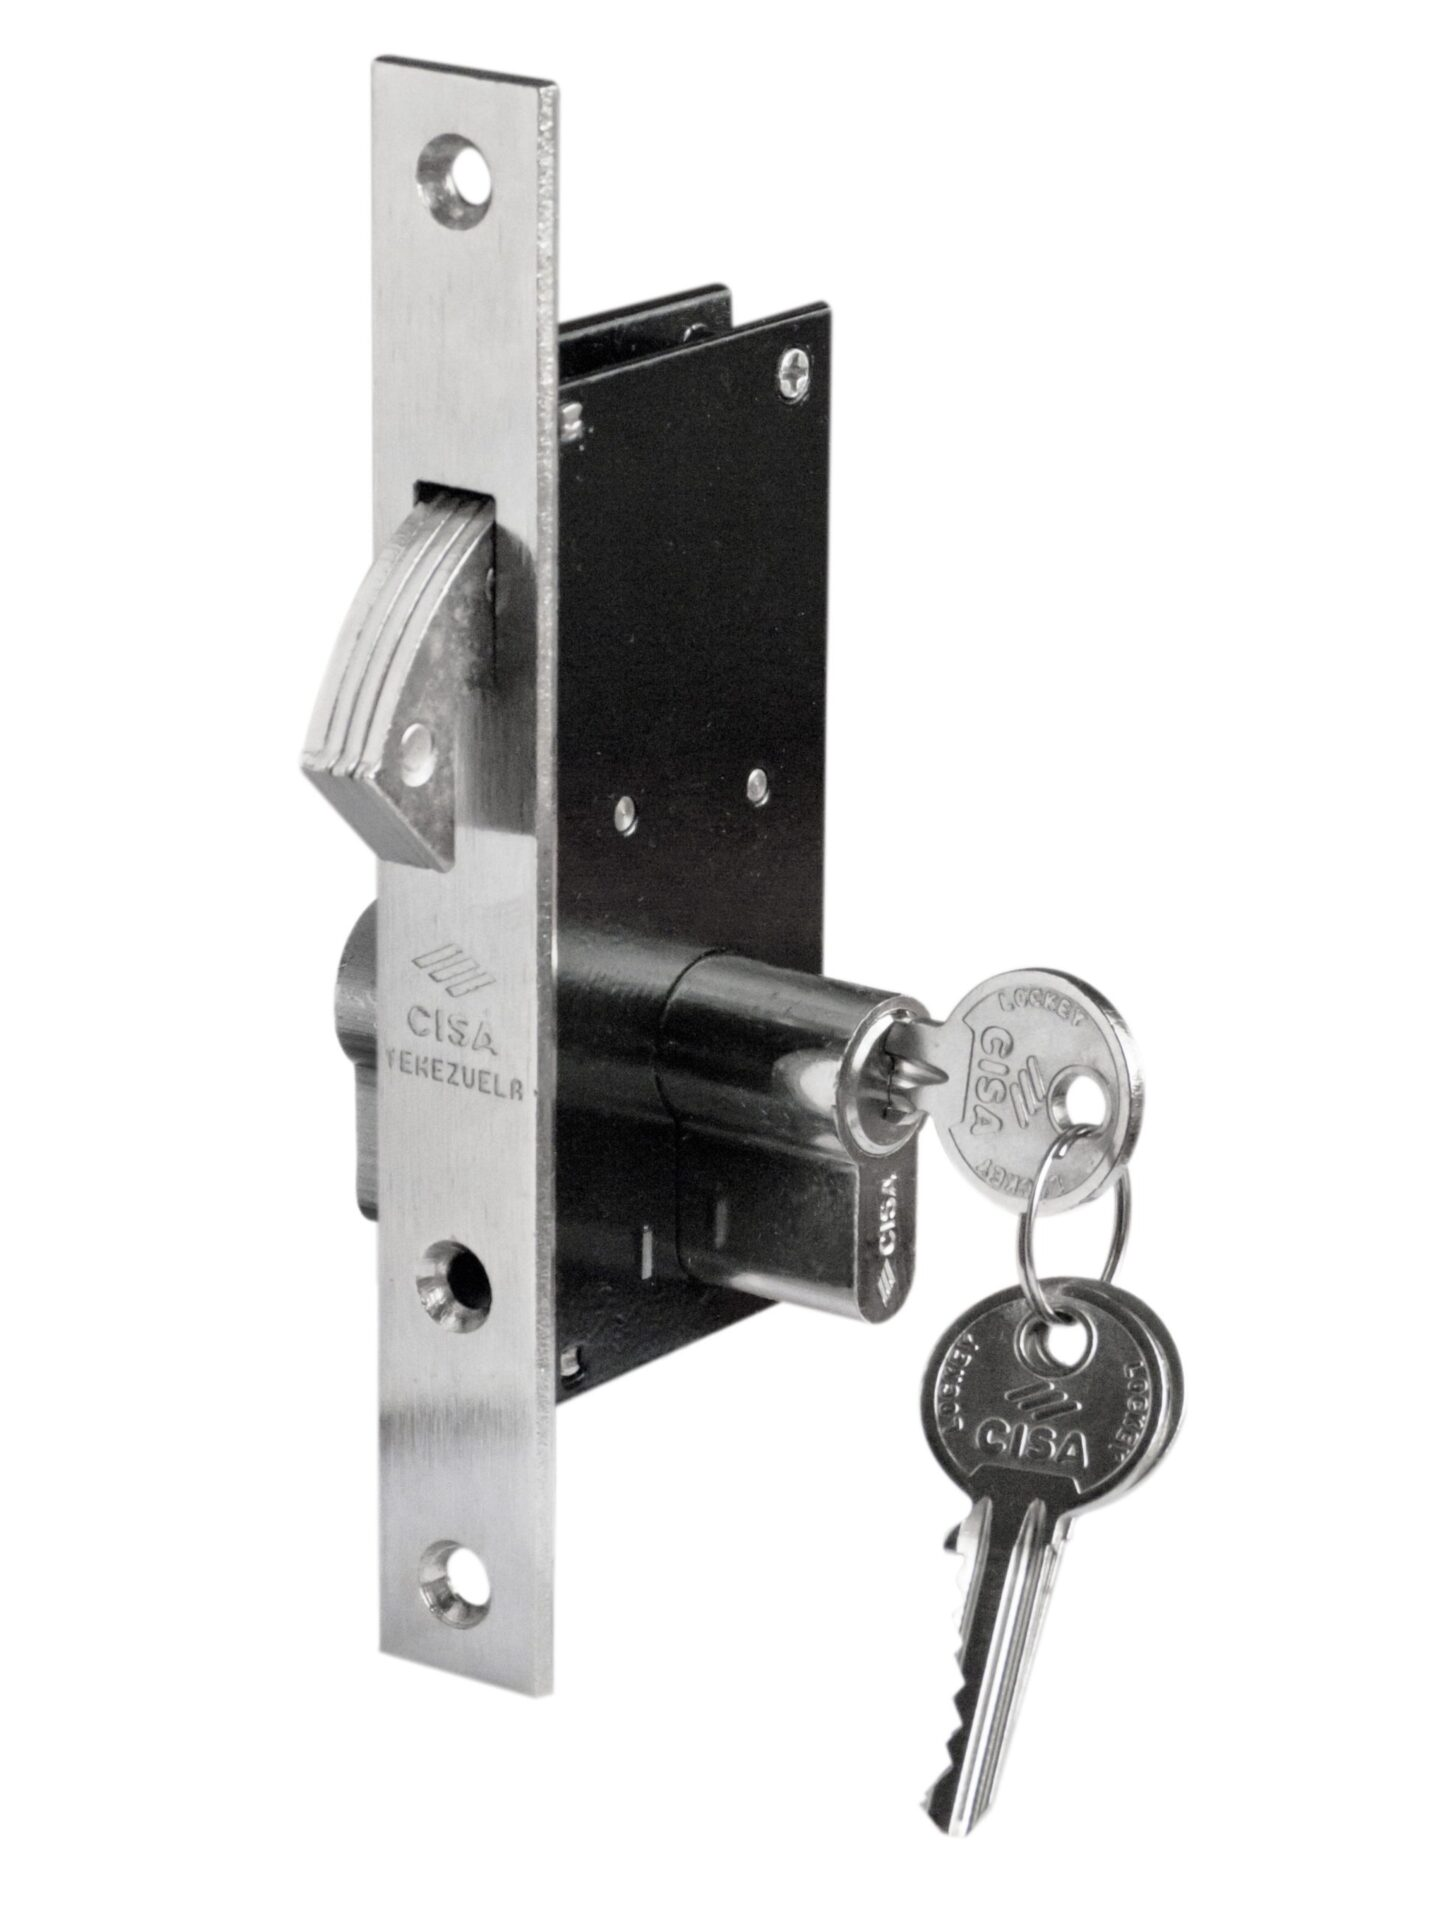 Hook Mortise Keyed Door Lock 30 mm or 1-1/4 (with Double Cylinder)